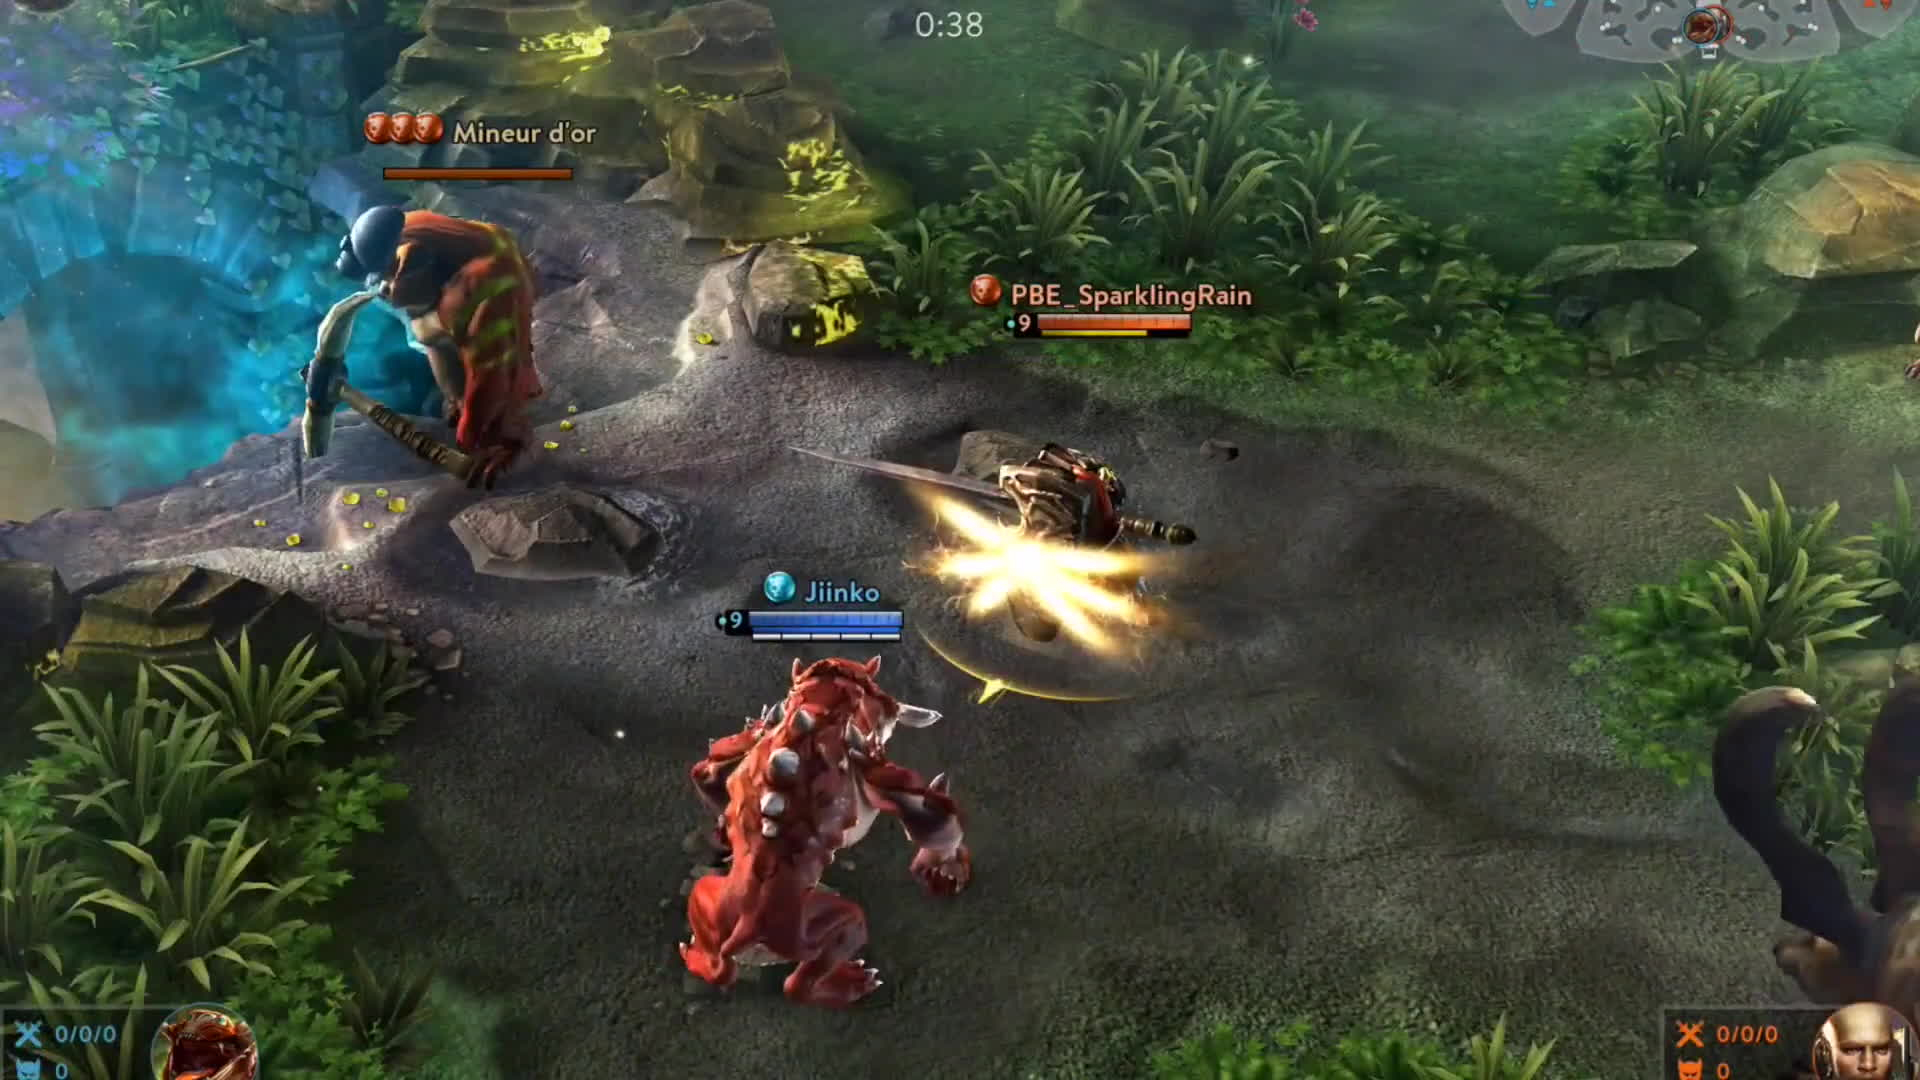 Grumpjaw Vs Everything - Vainglory Experiments Gif tout Mineur D Or